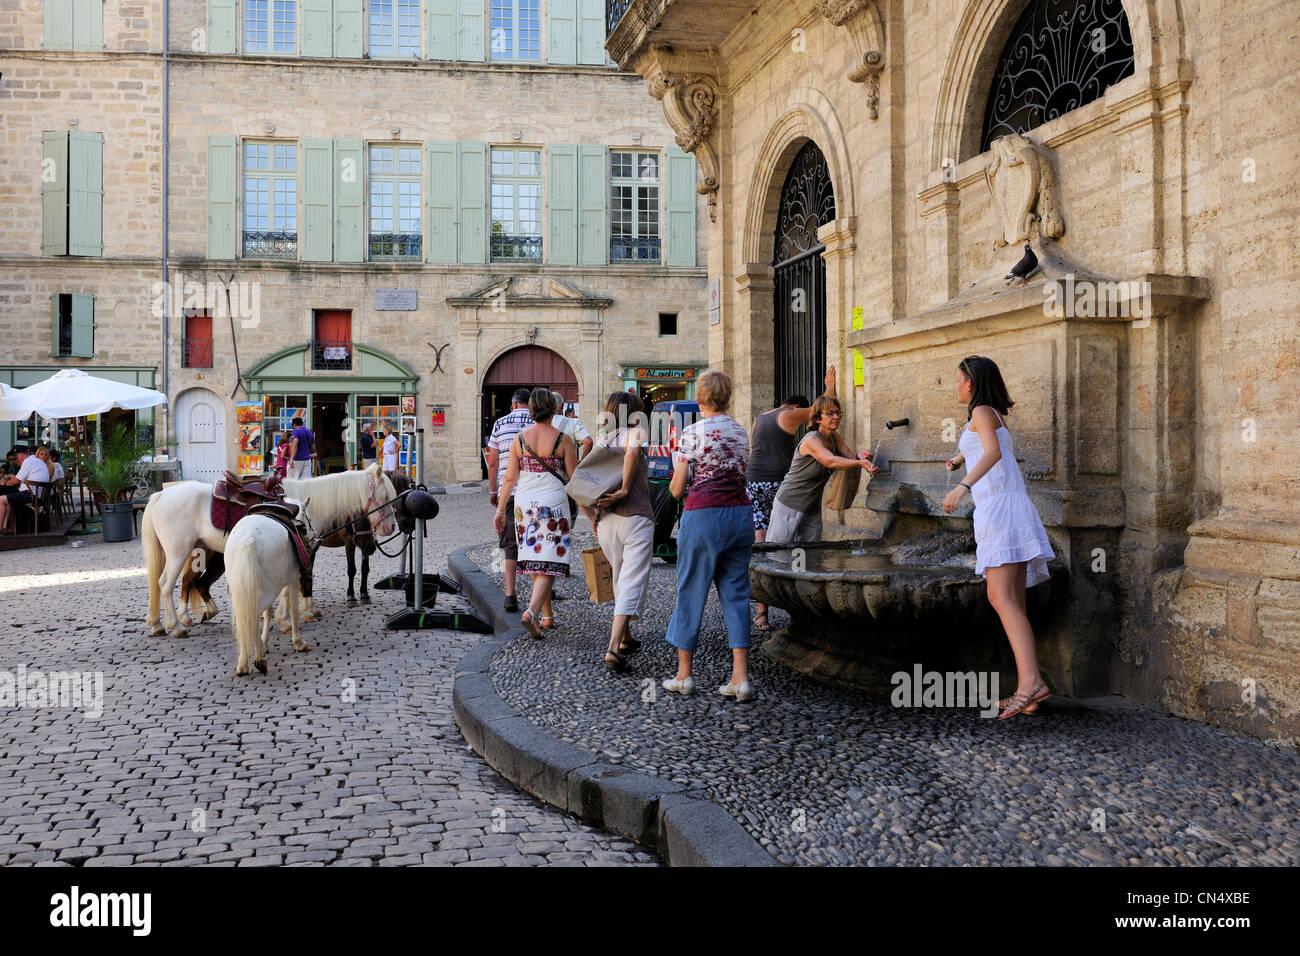 France, Herault, Pezenas, fountain of the Hotel des Consuls Place Gambetta now home for arts and crafts on the right - Stock Image